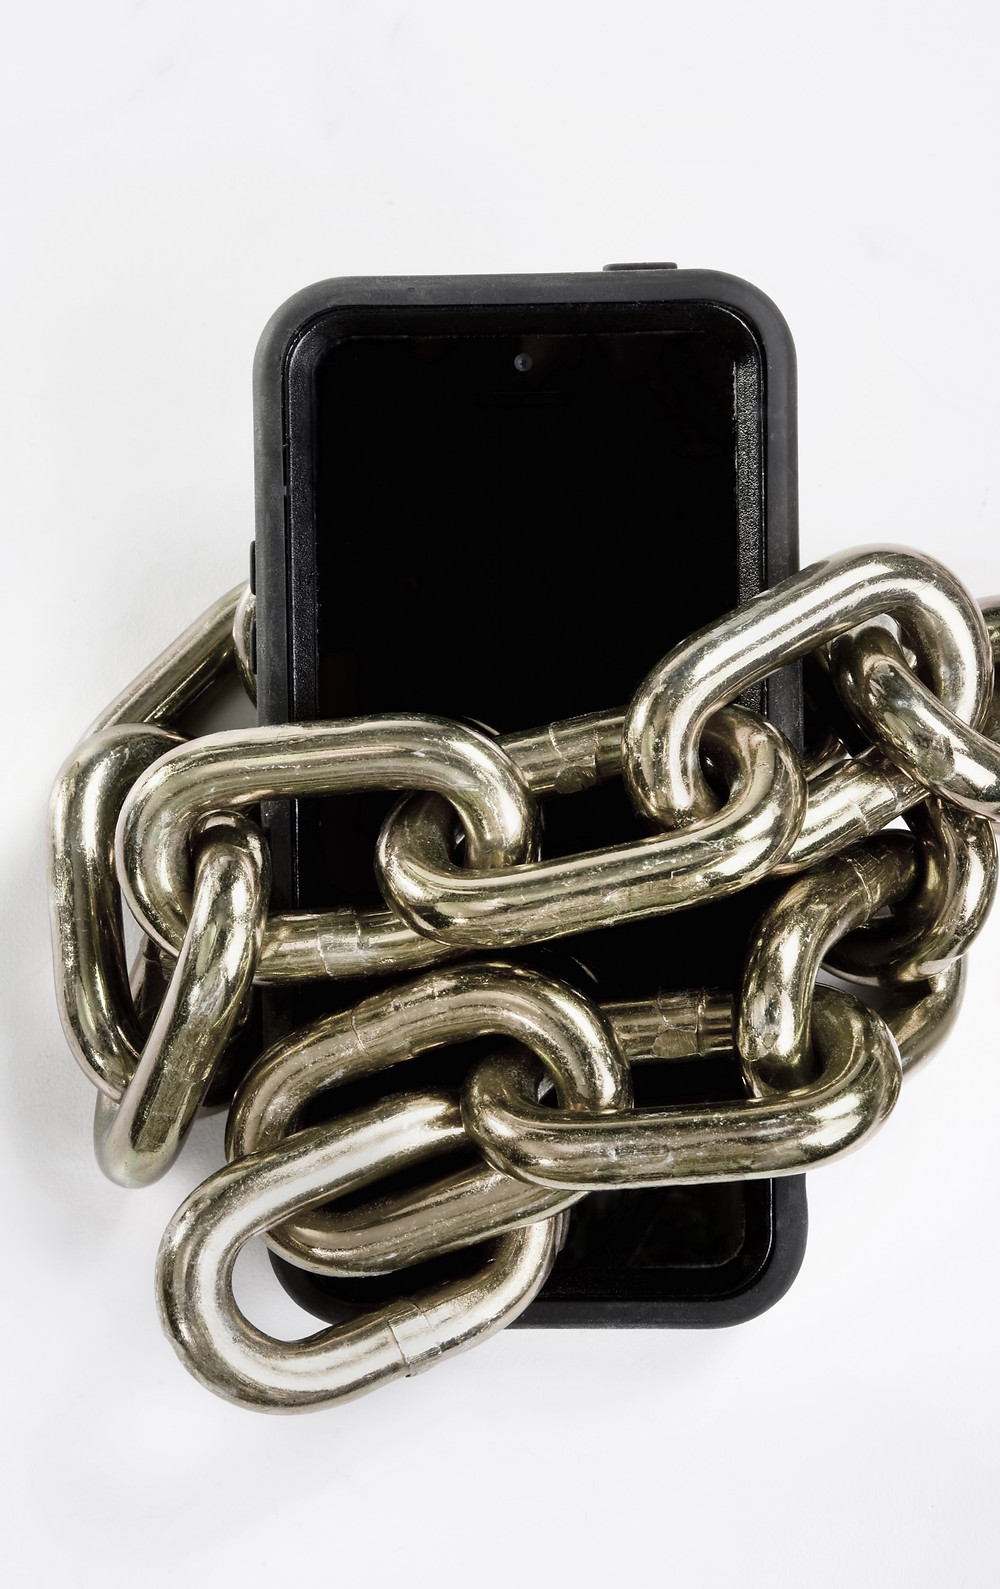 Cell phone wrapped in chain link